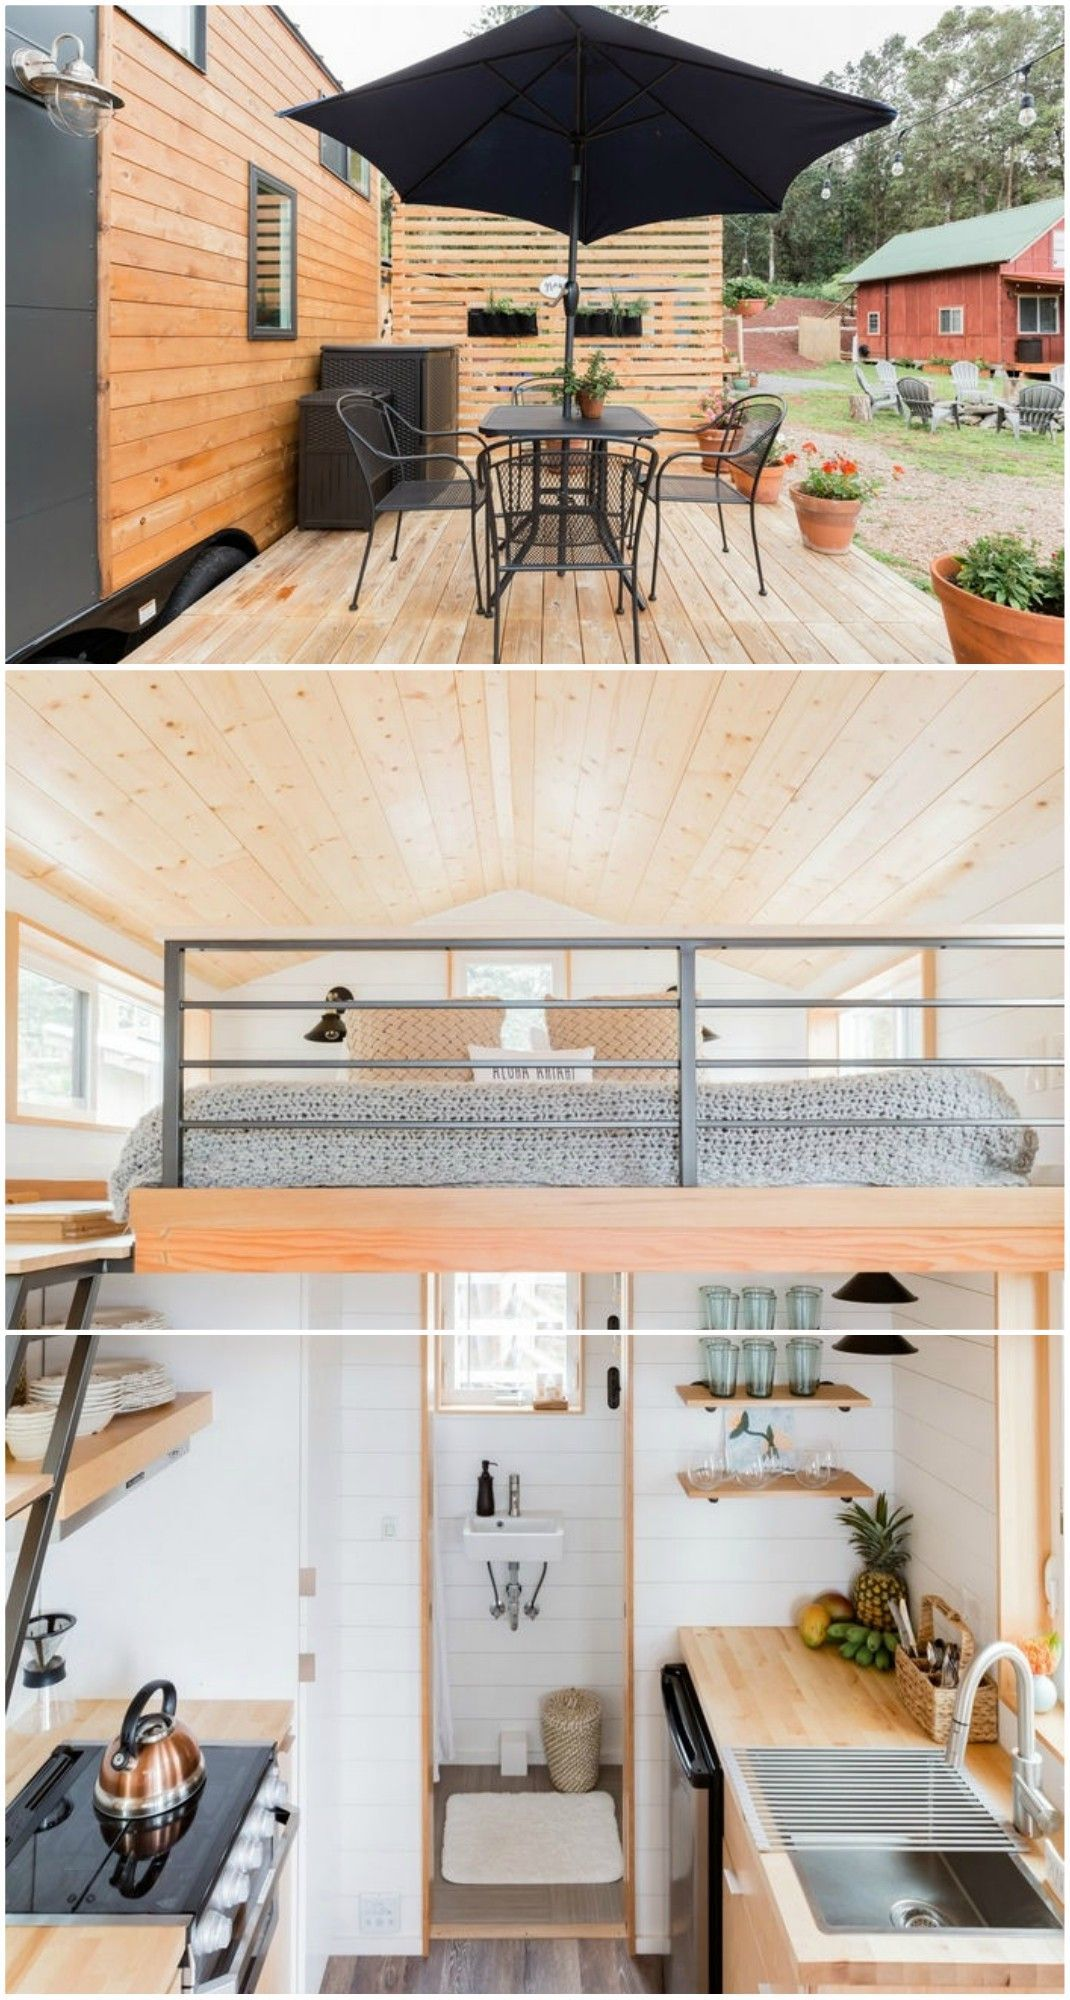 15 Amazing Tiny Houses You Can Rent On Airbnb Tiny House House Furniture Details Design